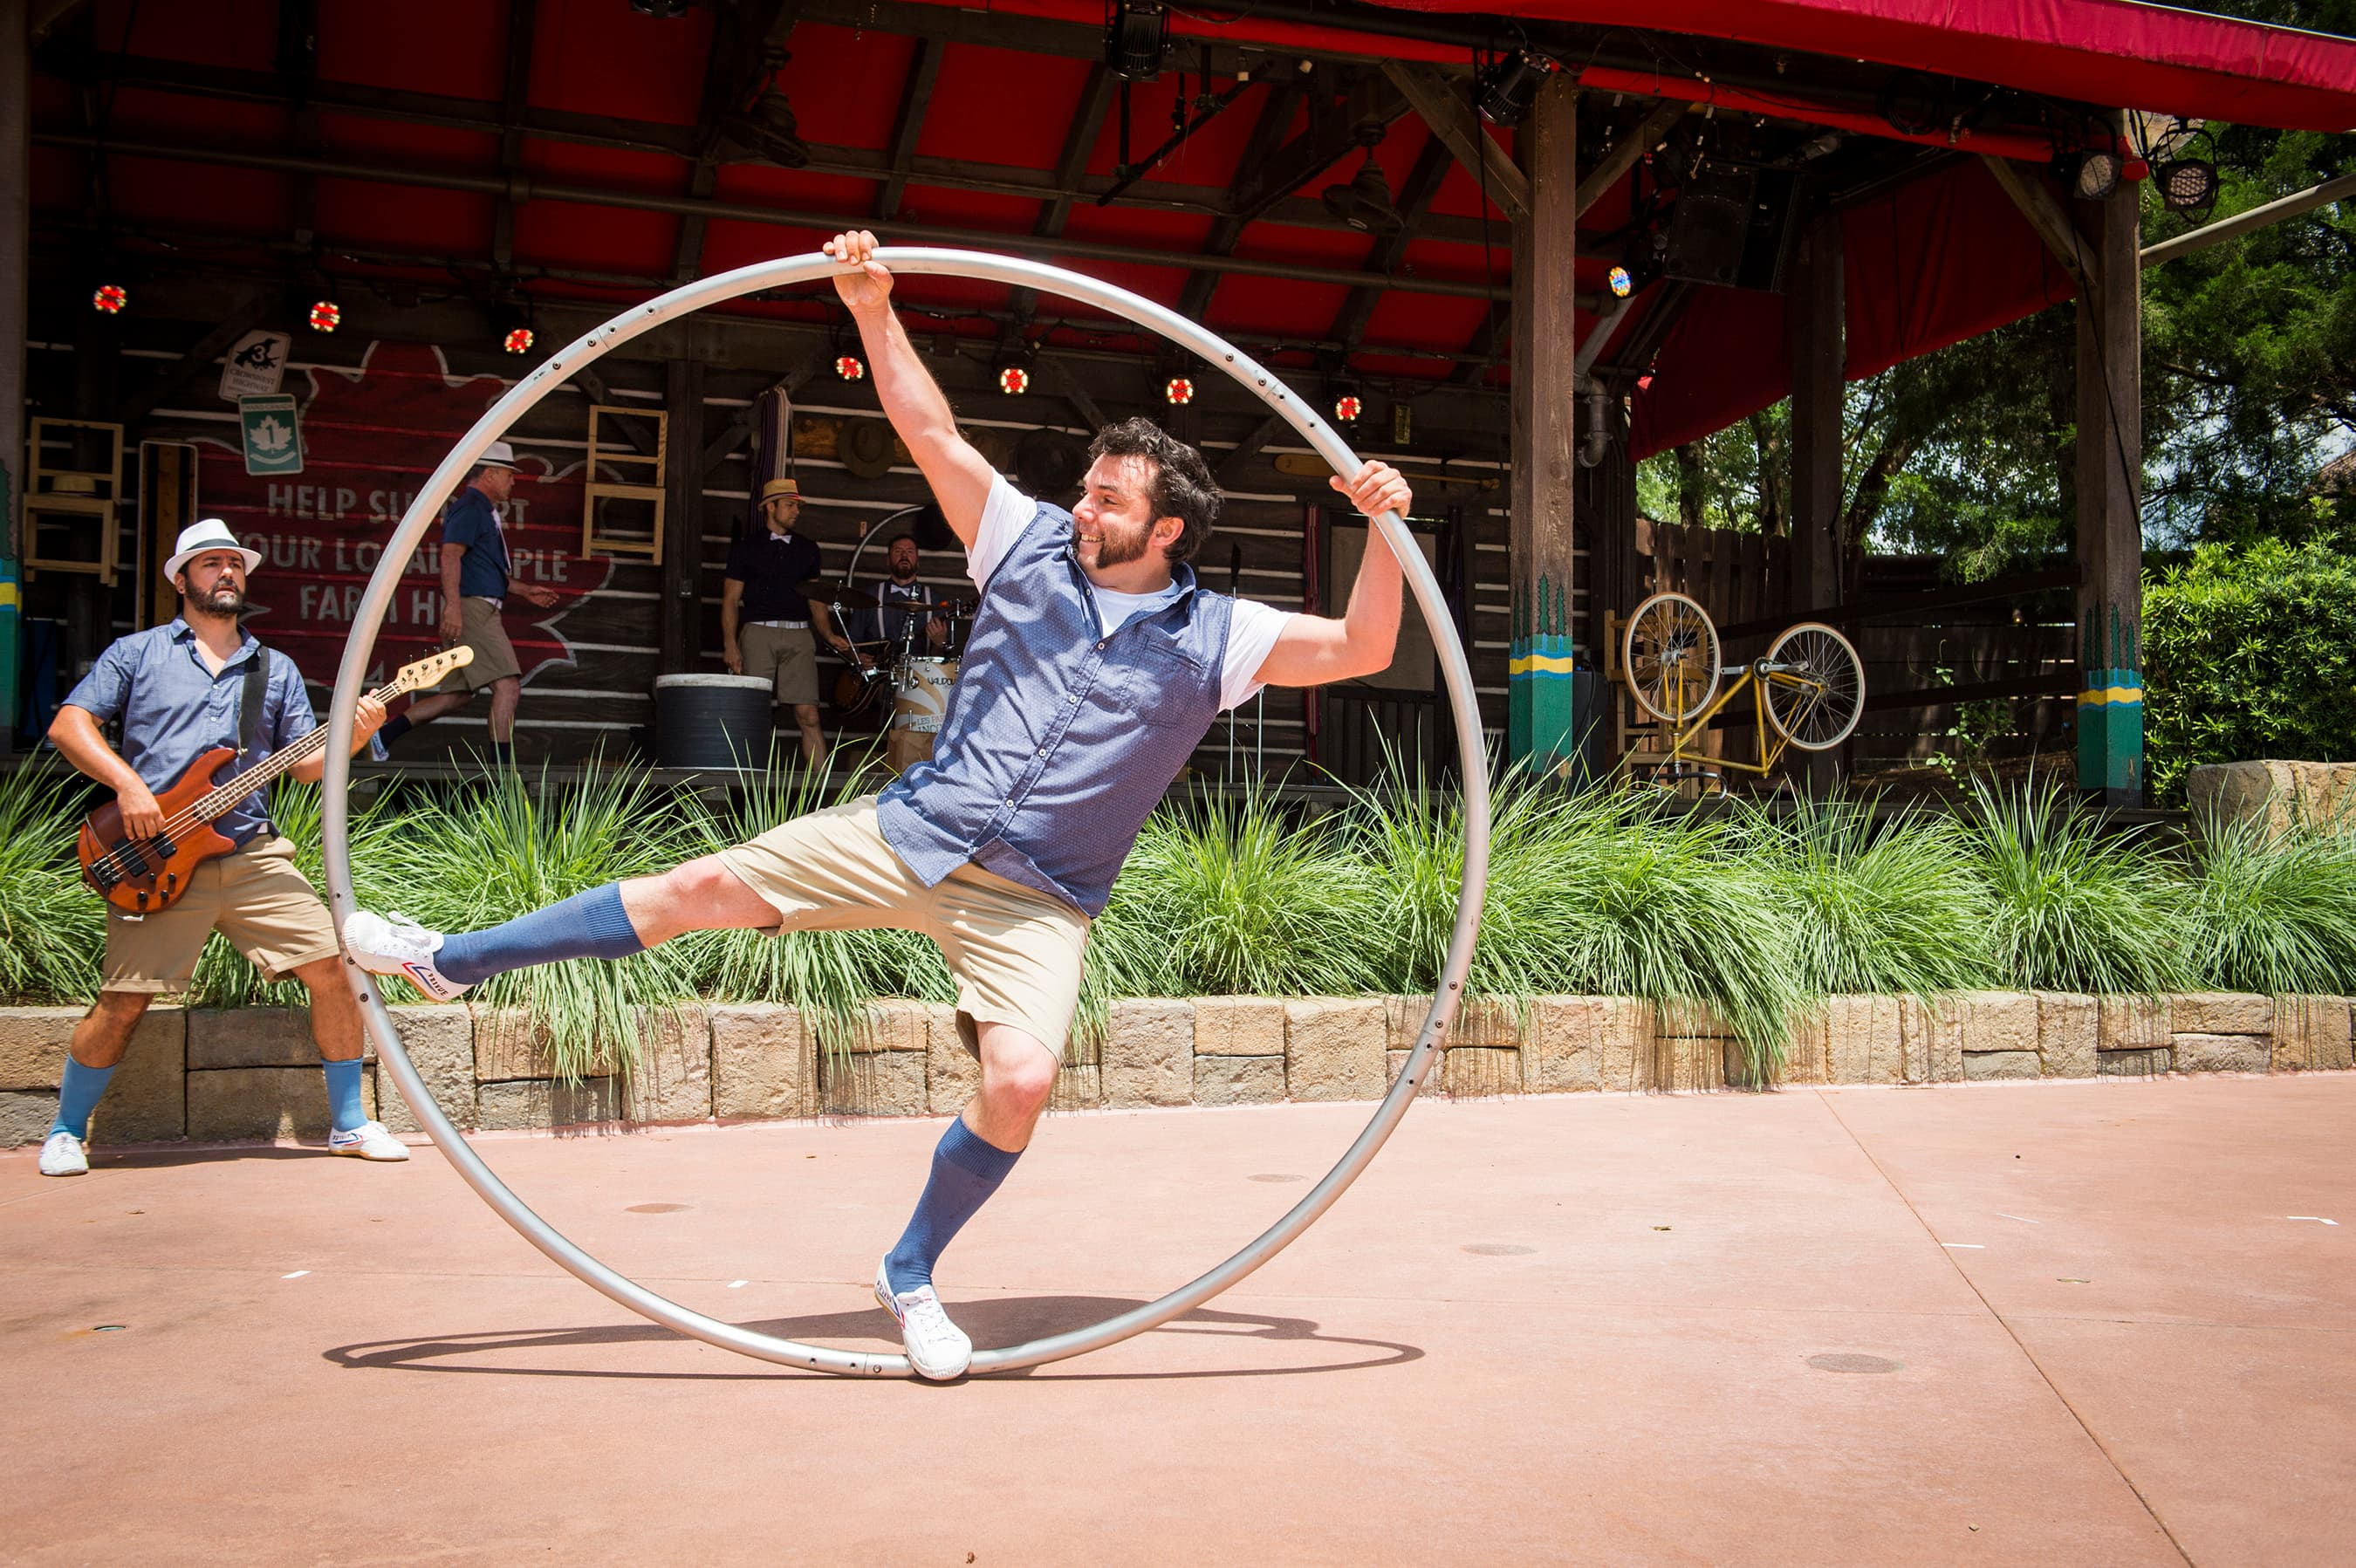 Catch the Unique Performance of Les Parfaits Inconnus This Summer at Epcot